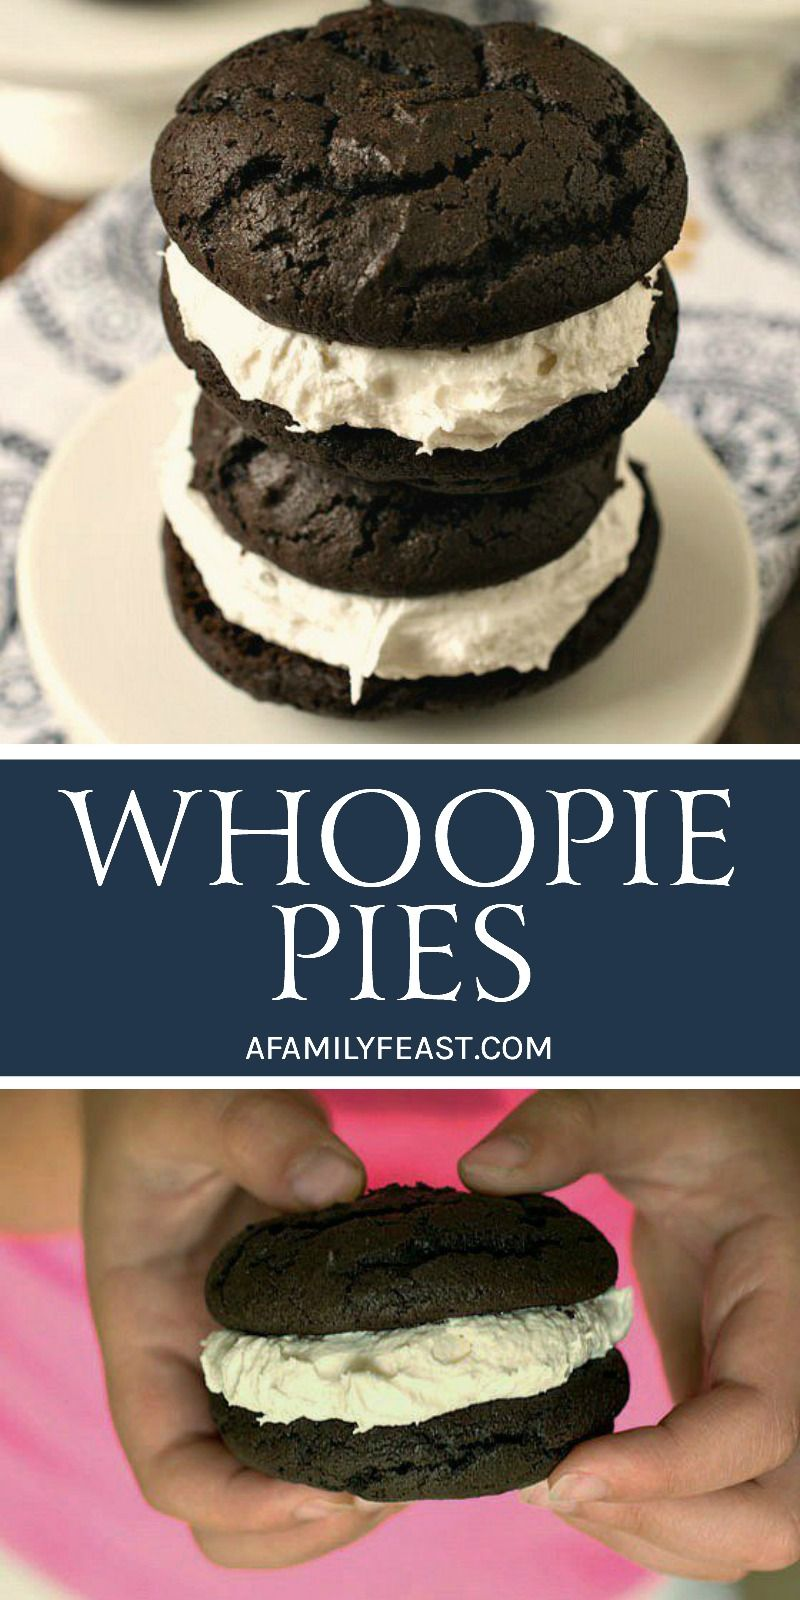 Whoopie Pies Whoopie Pies are a classic New England dessert. Fudgy chocolate cake sandwiching a creamy and sweet marshmallow filling. So good!